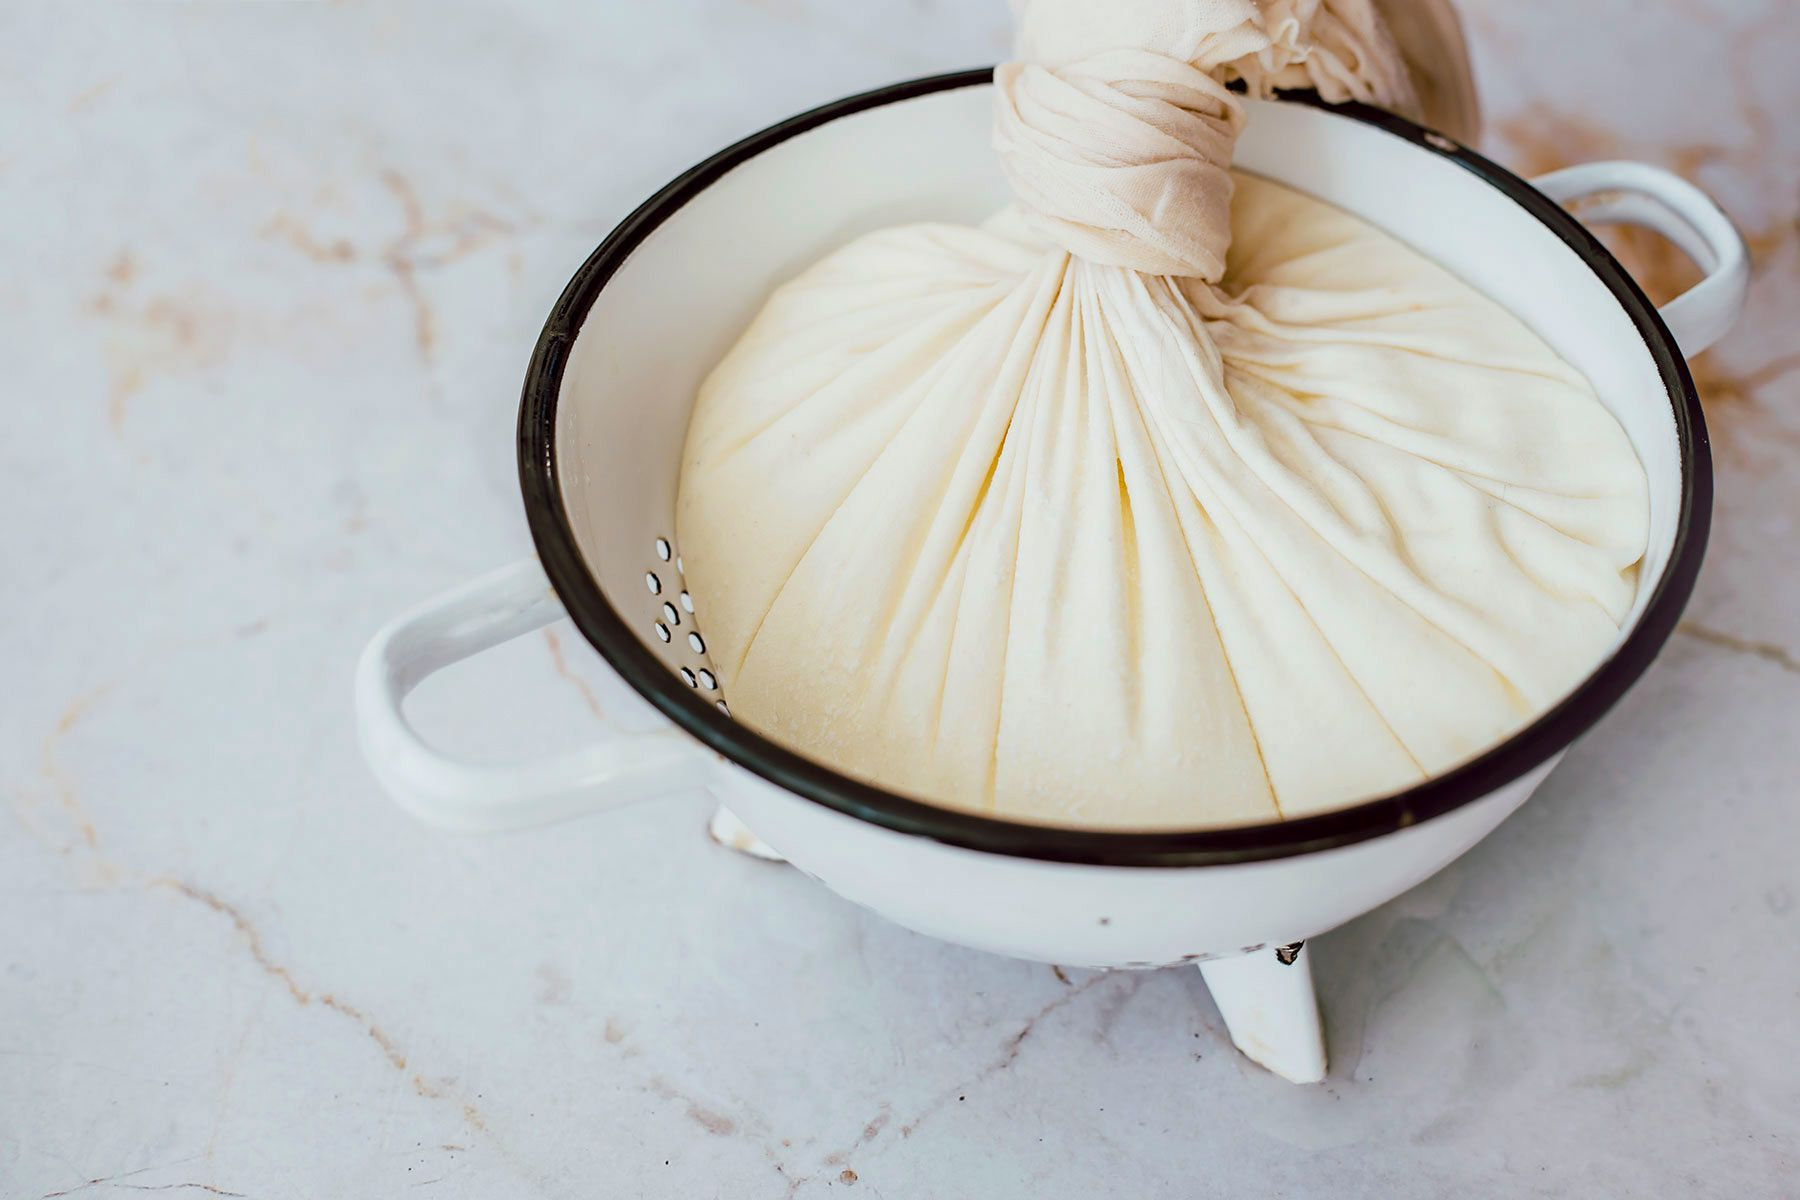 tie the muslin into a tight knot with the curd inside